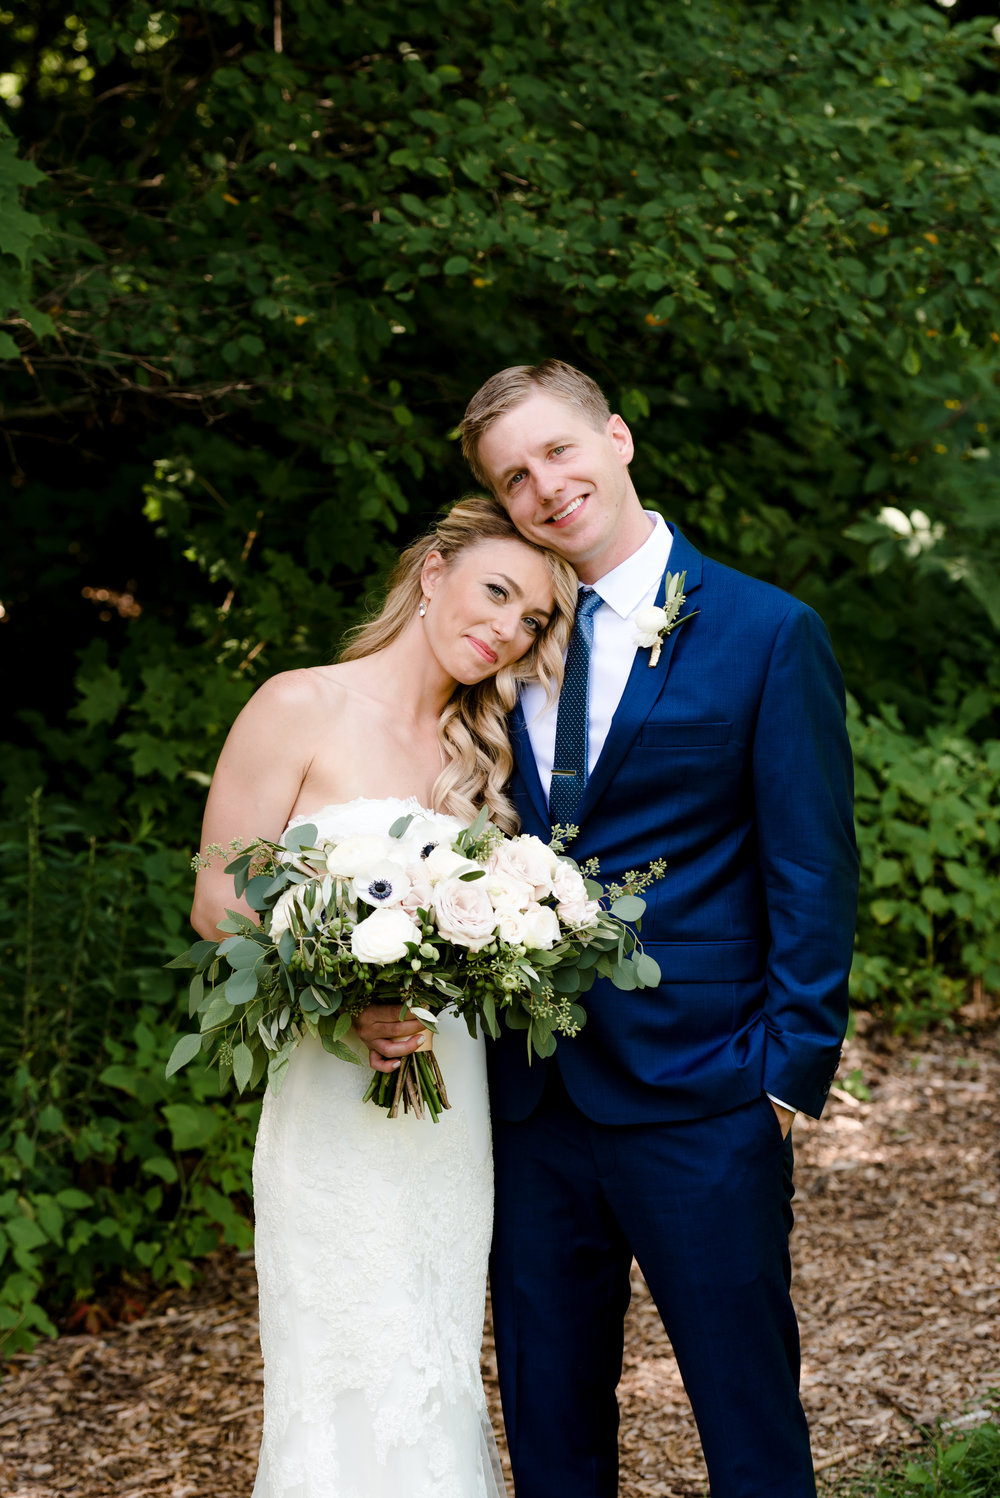 Peaceful Bride and Groom - Minnesota Landscape Arboretum Wedding - Laura Robinson Photography